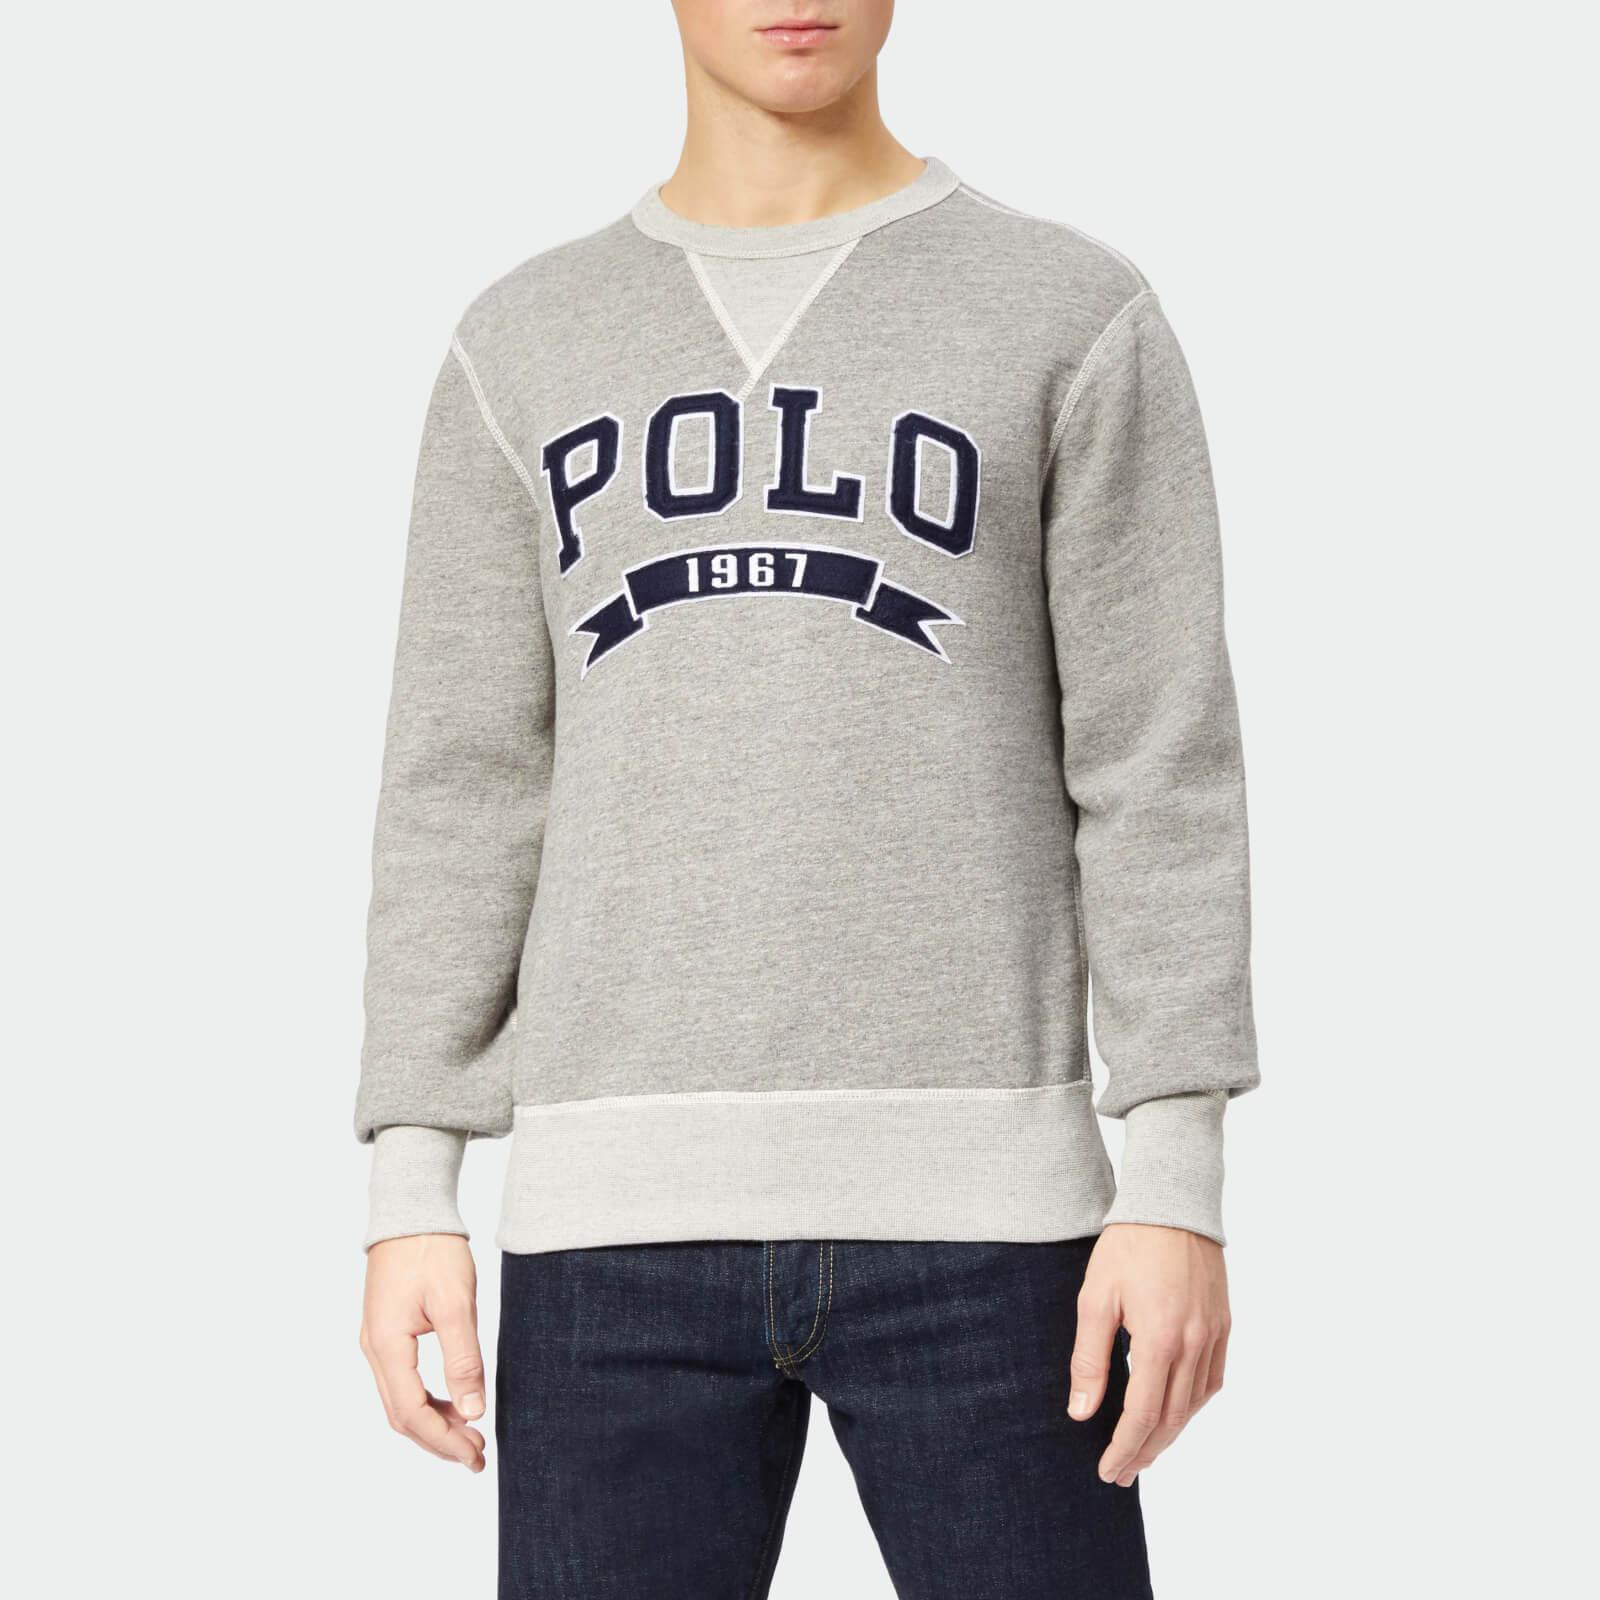 a94299f4a Polo Ralph Lauren - Gray Large Polo Crew Neck Sweatshirt for Men - Lyst.  View fullscreen